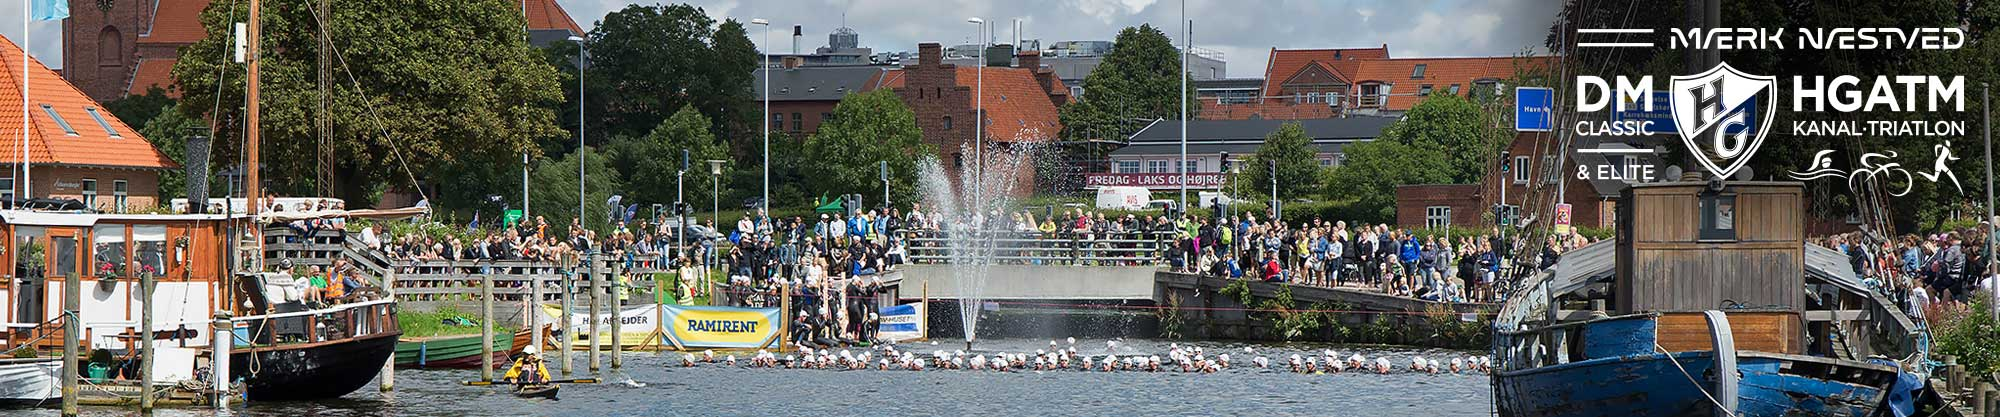 MÆRK NÆSTVED Kanal Triathlon DM CLASSIC